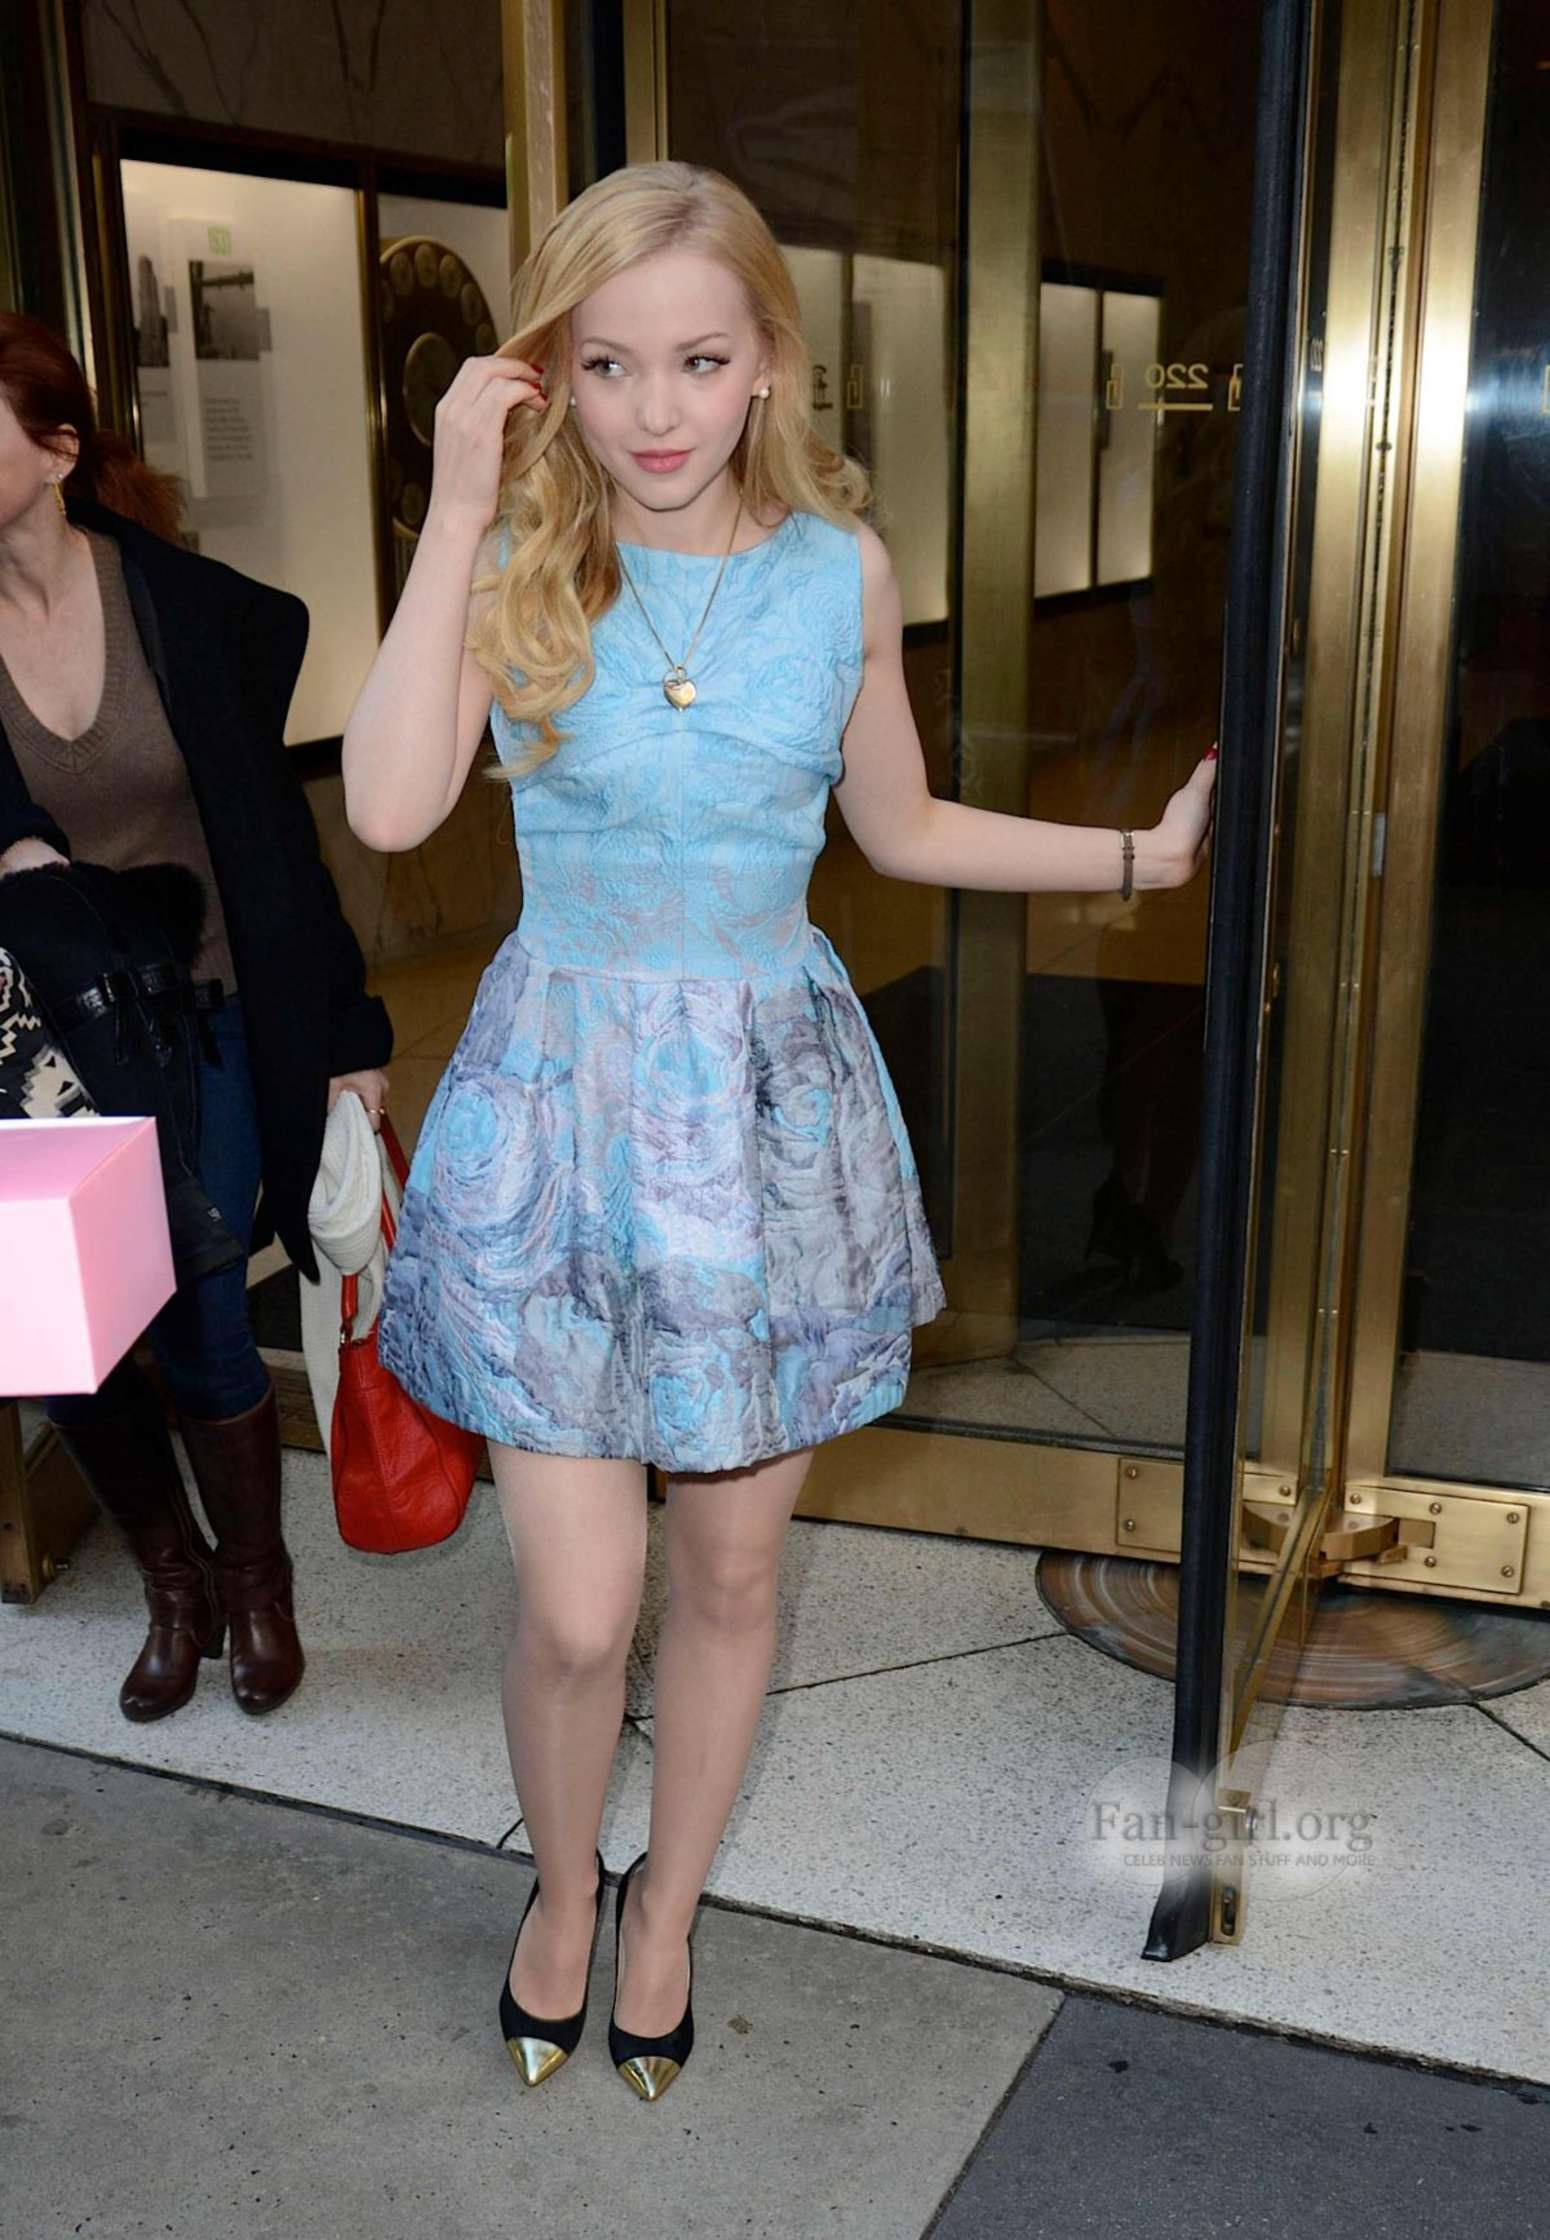 Dove Cameron 2014 : Dove Cameron 18th birthday photos -03